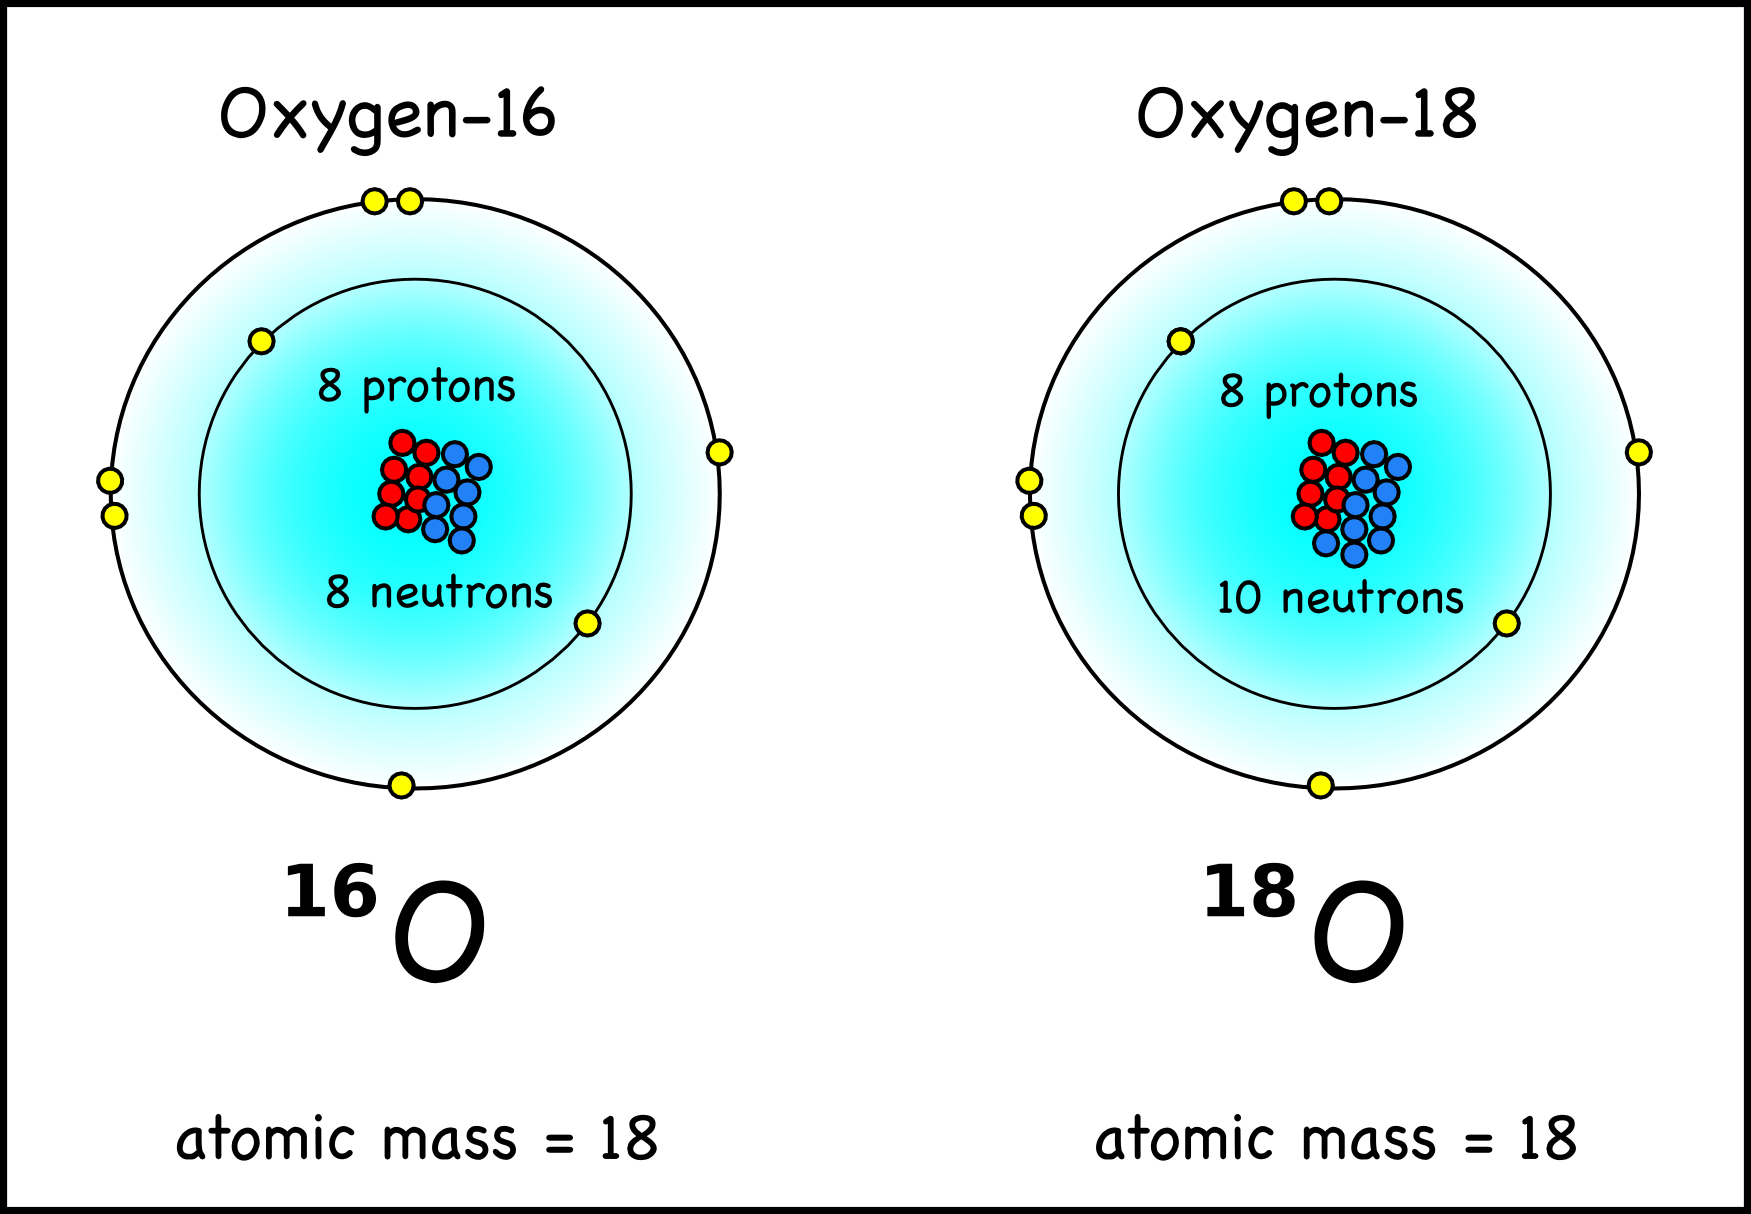 oxygen 18 has two more neutrons than the much more common oxygen 16